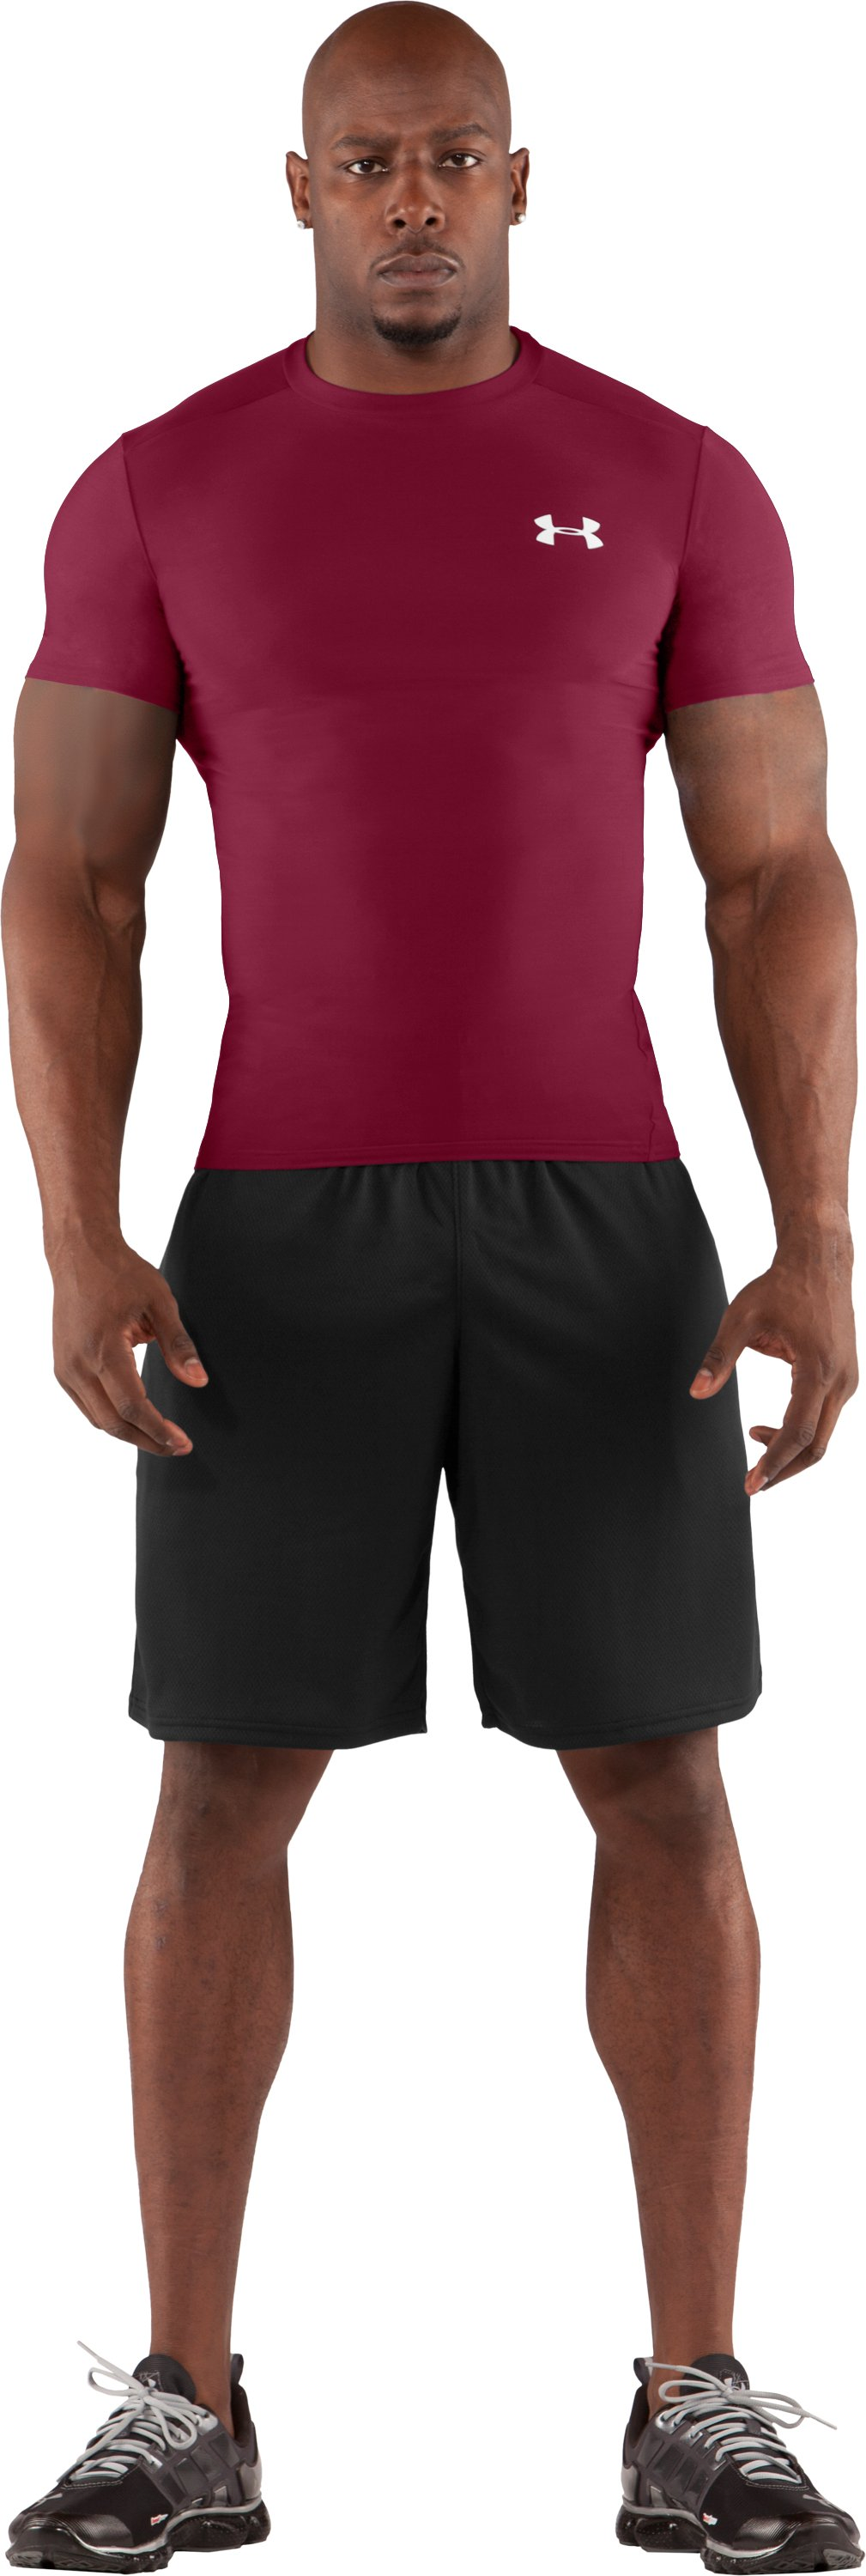 Men's HeatGear® Compression Short Sleeve T-Shirt, Maroon, Front